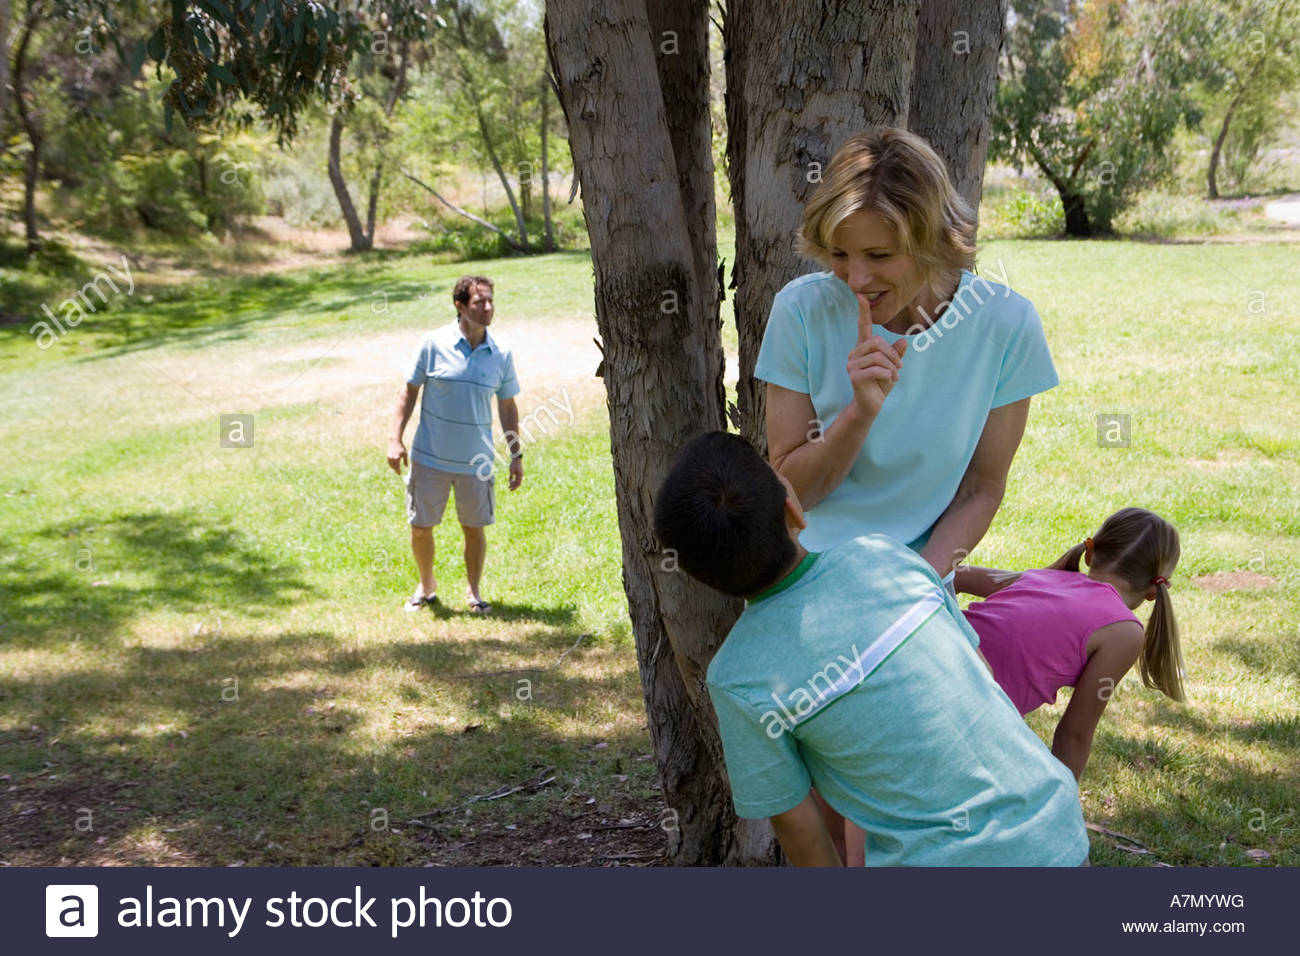 Family playing hide and seek in park mother and children 8 11 hiding behind tree father looking - Stock Image